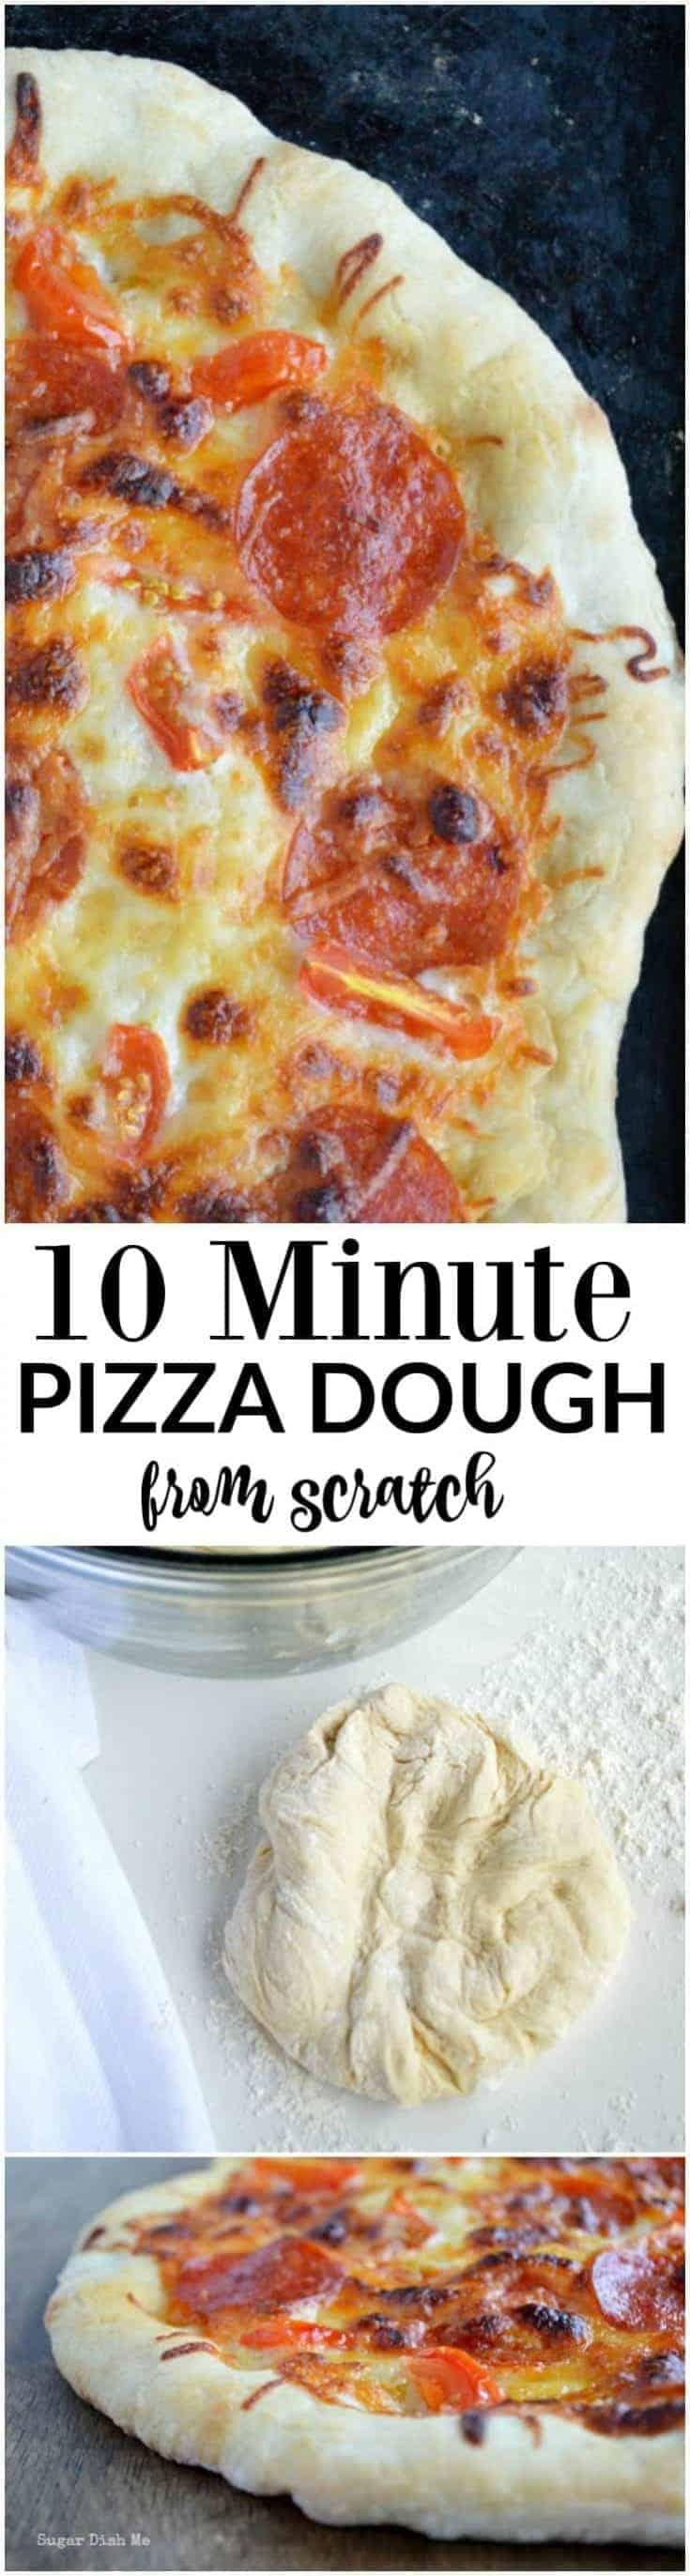 This pizza dough comes together and is ready to bake in just 10 minutes; you can have fresh, hot, homemade pizza on the table in 20!!!